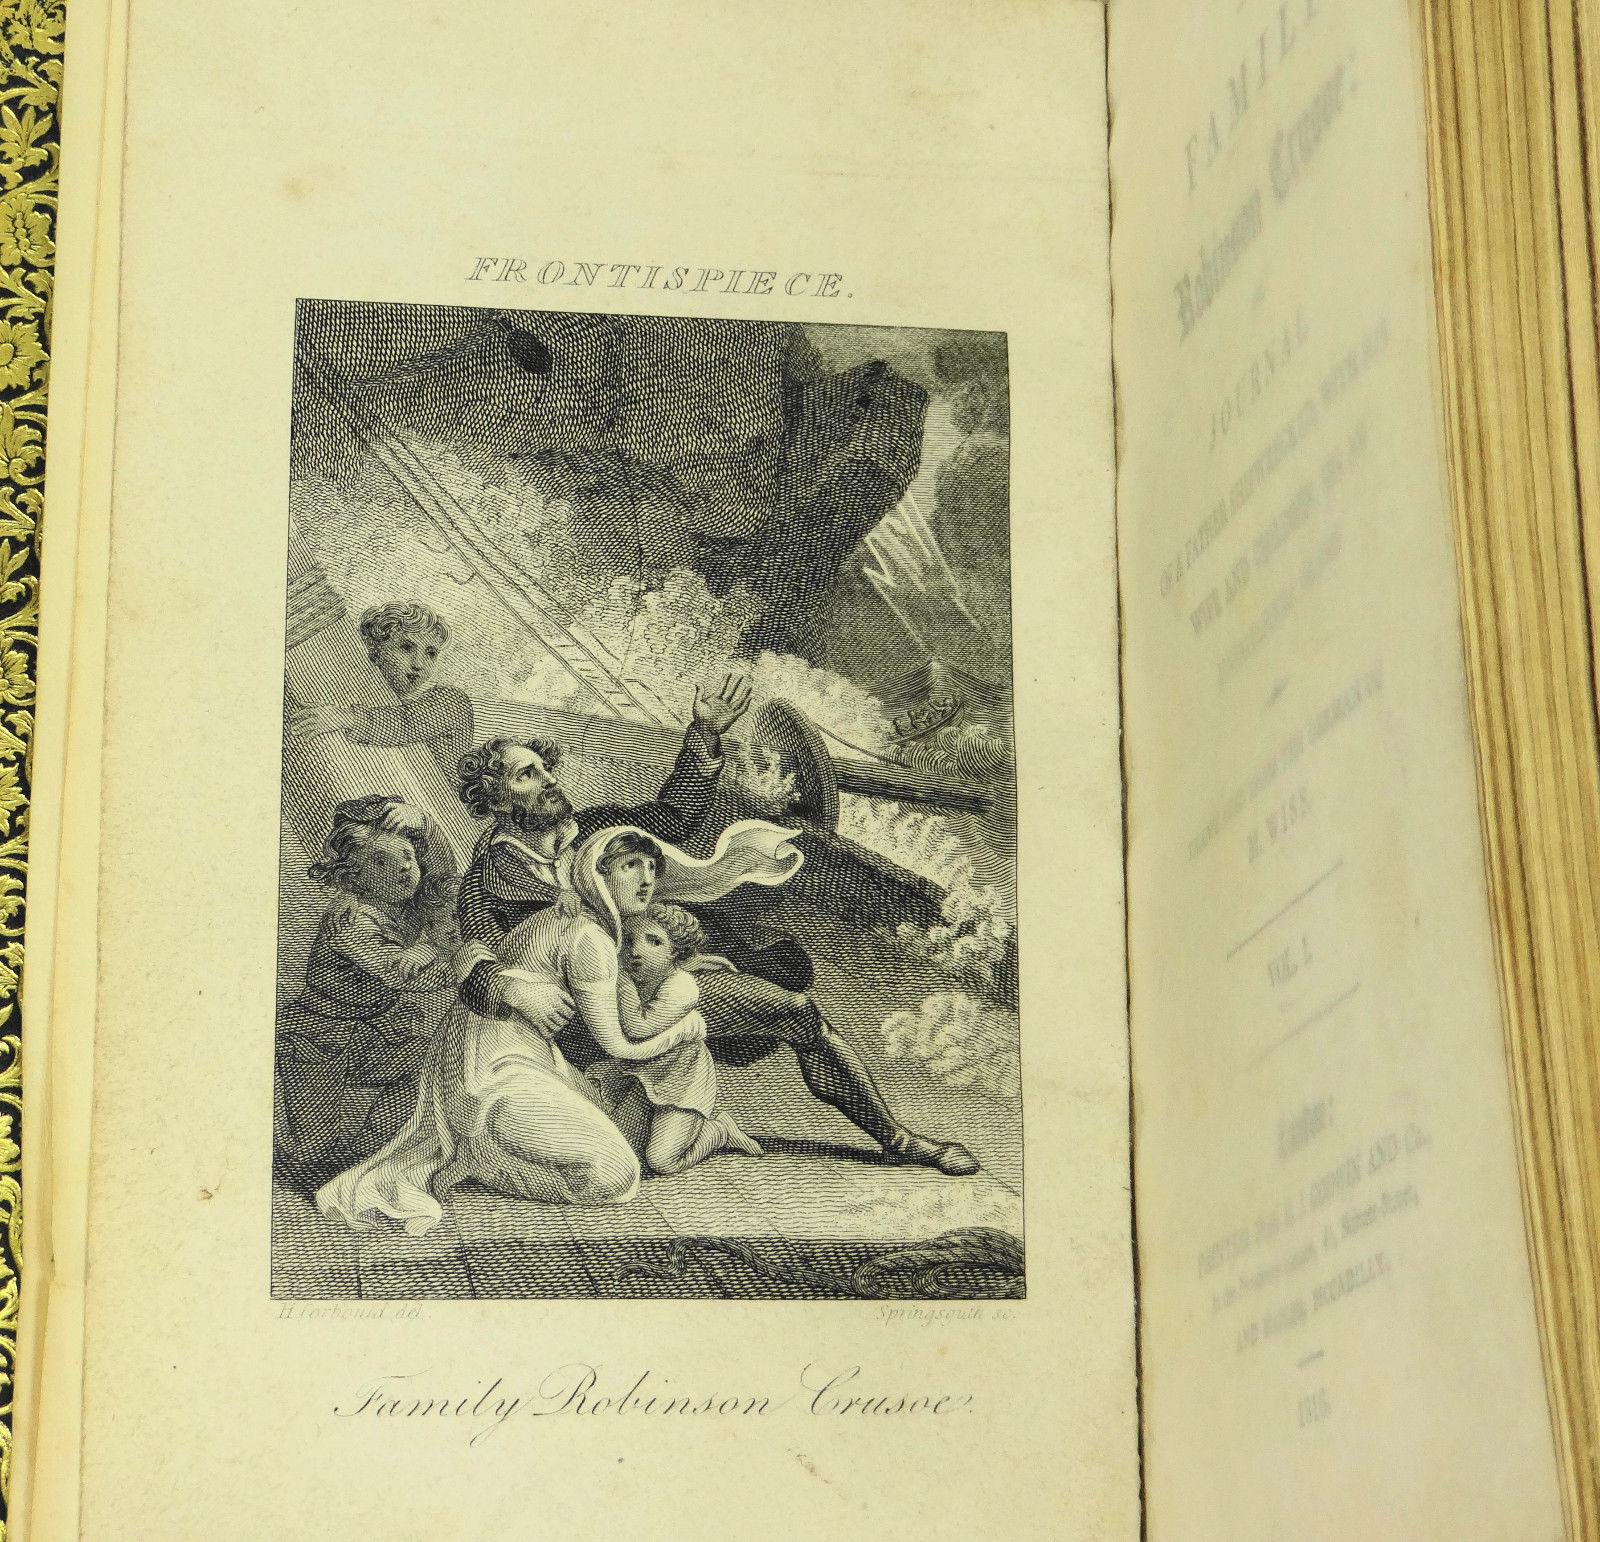 robinson crusoe essays Robinson crusoe by daniel defoe i believe the most interesting character in this book was robinson crusoe he is a young man who runs away from home to seek adventure.